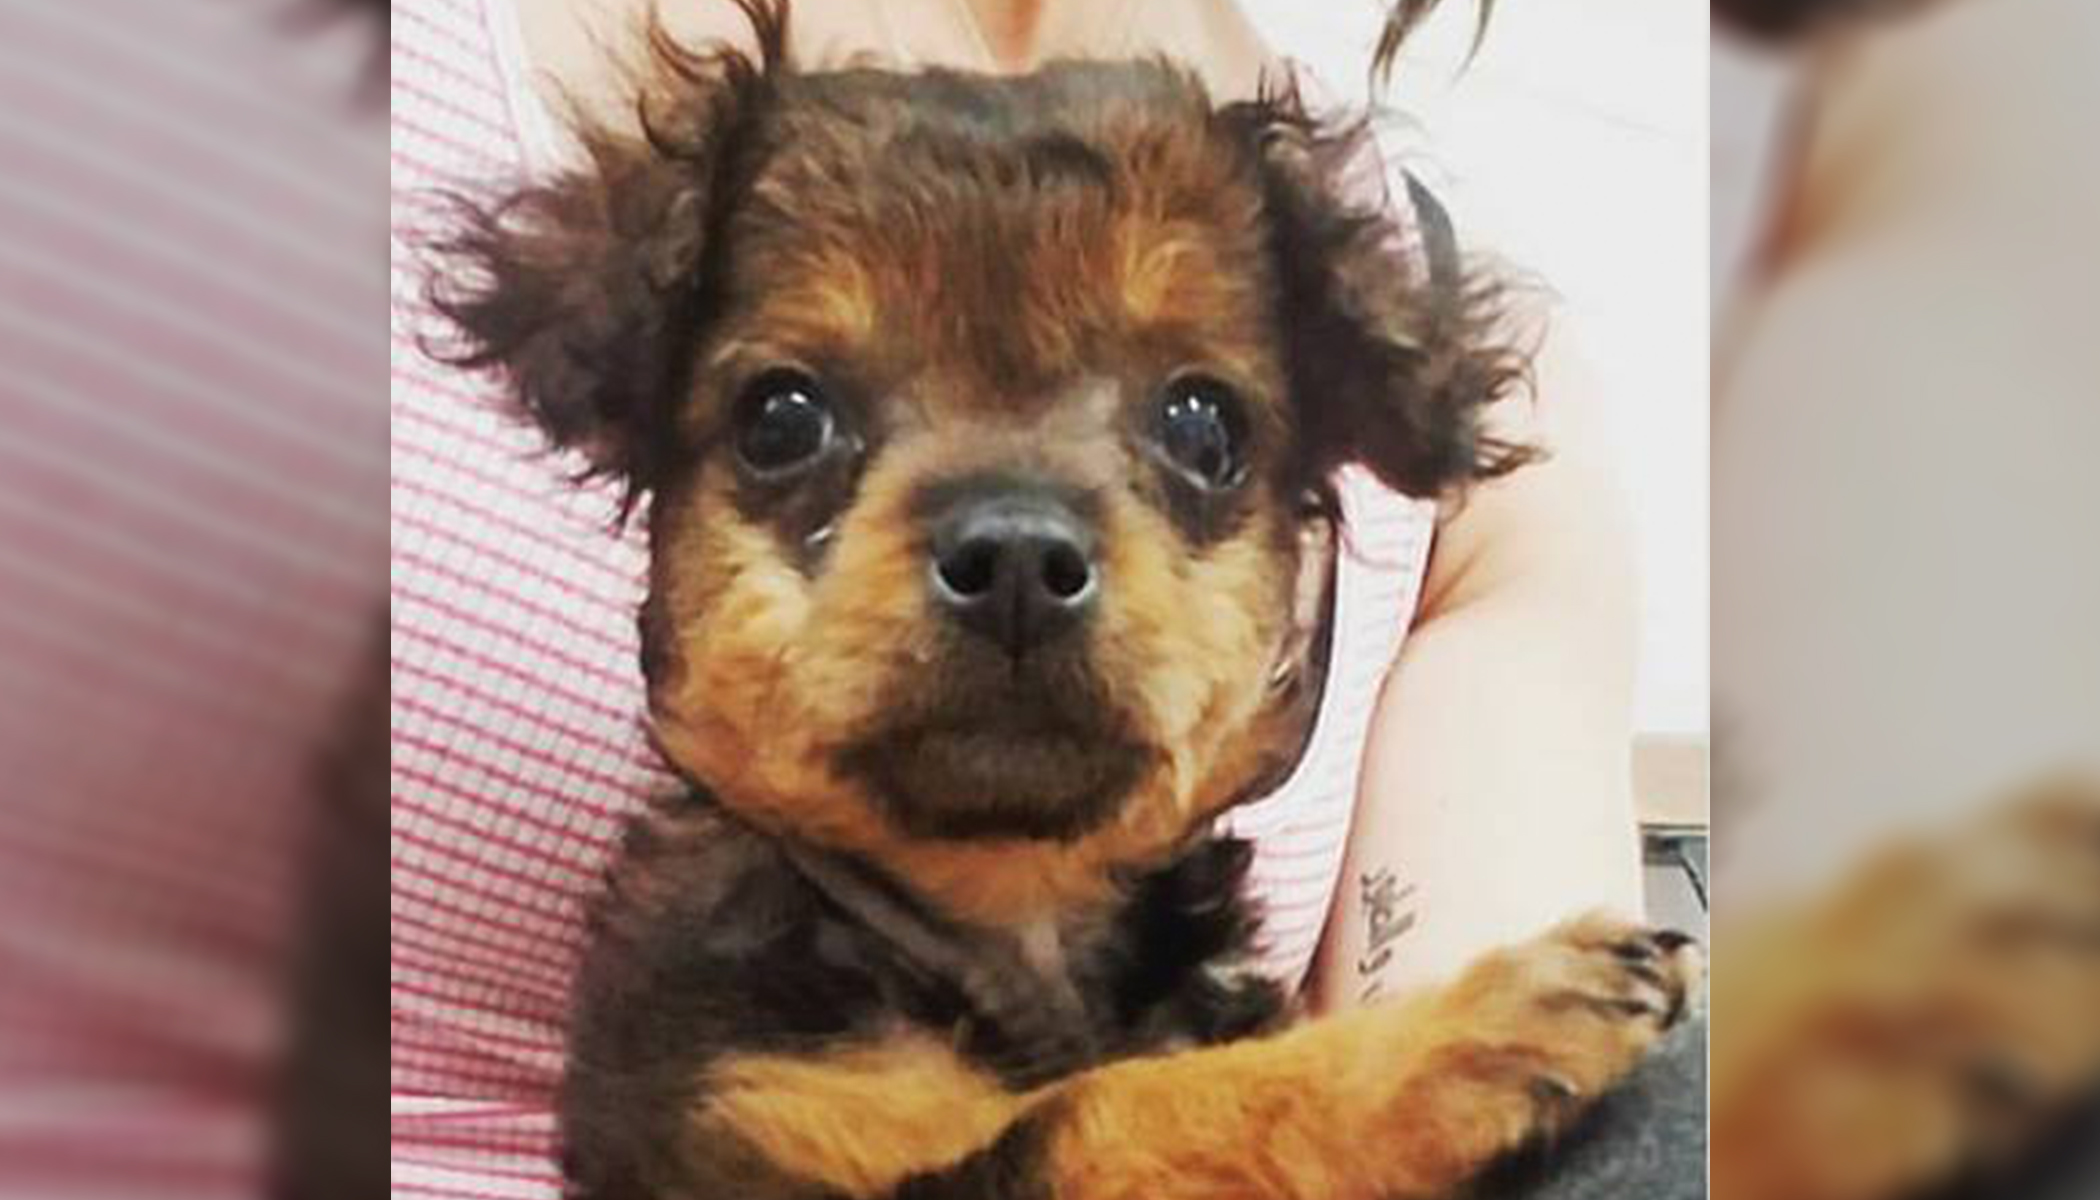 Family Abandons 'Paralyzed' Pup to Be Put Down. But Hours Later, the Vet Sees a Miracle